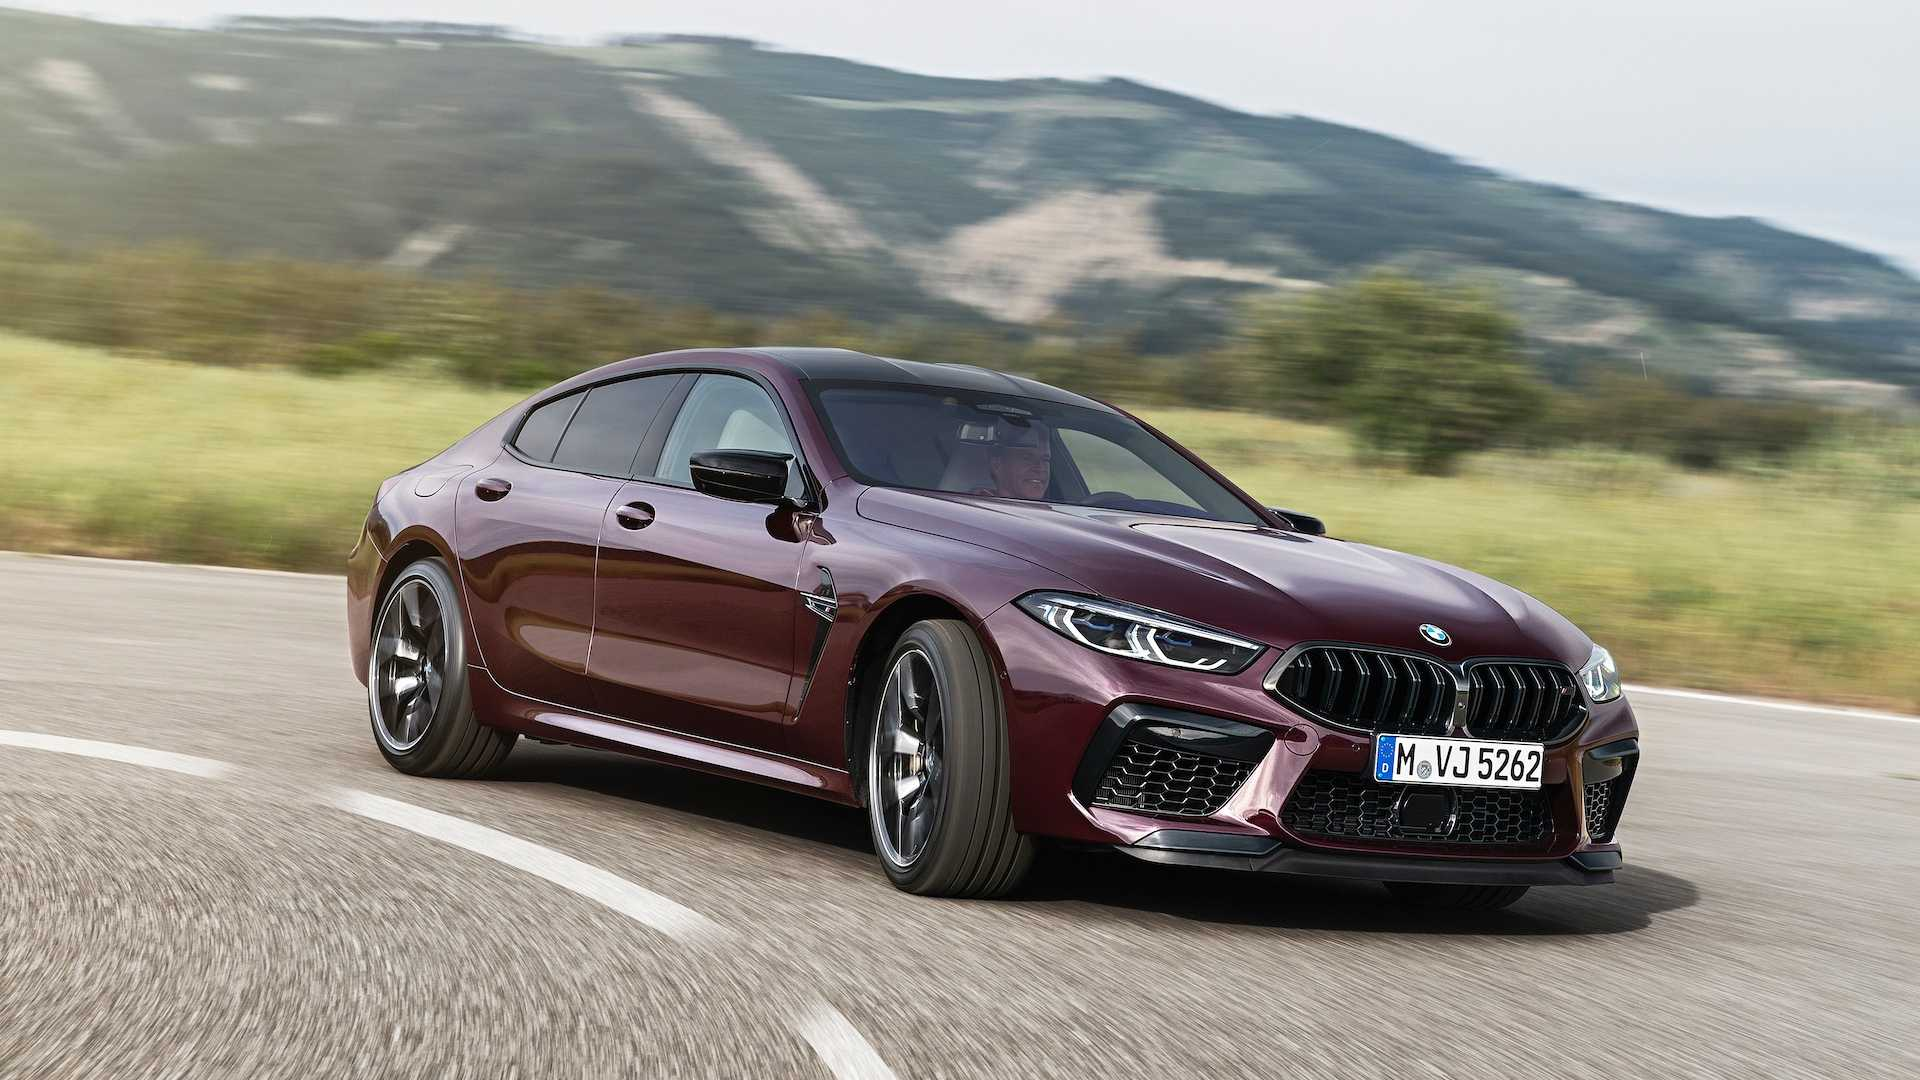 2020-bmw-m8-gran-coupe-competition-20